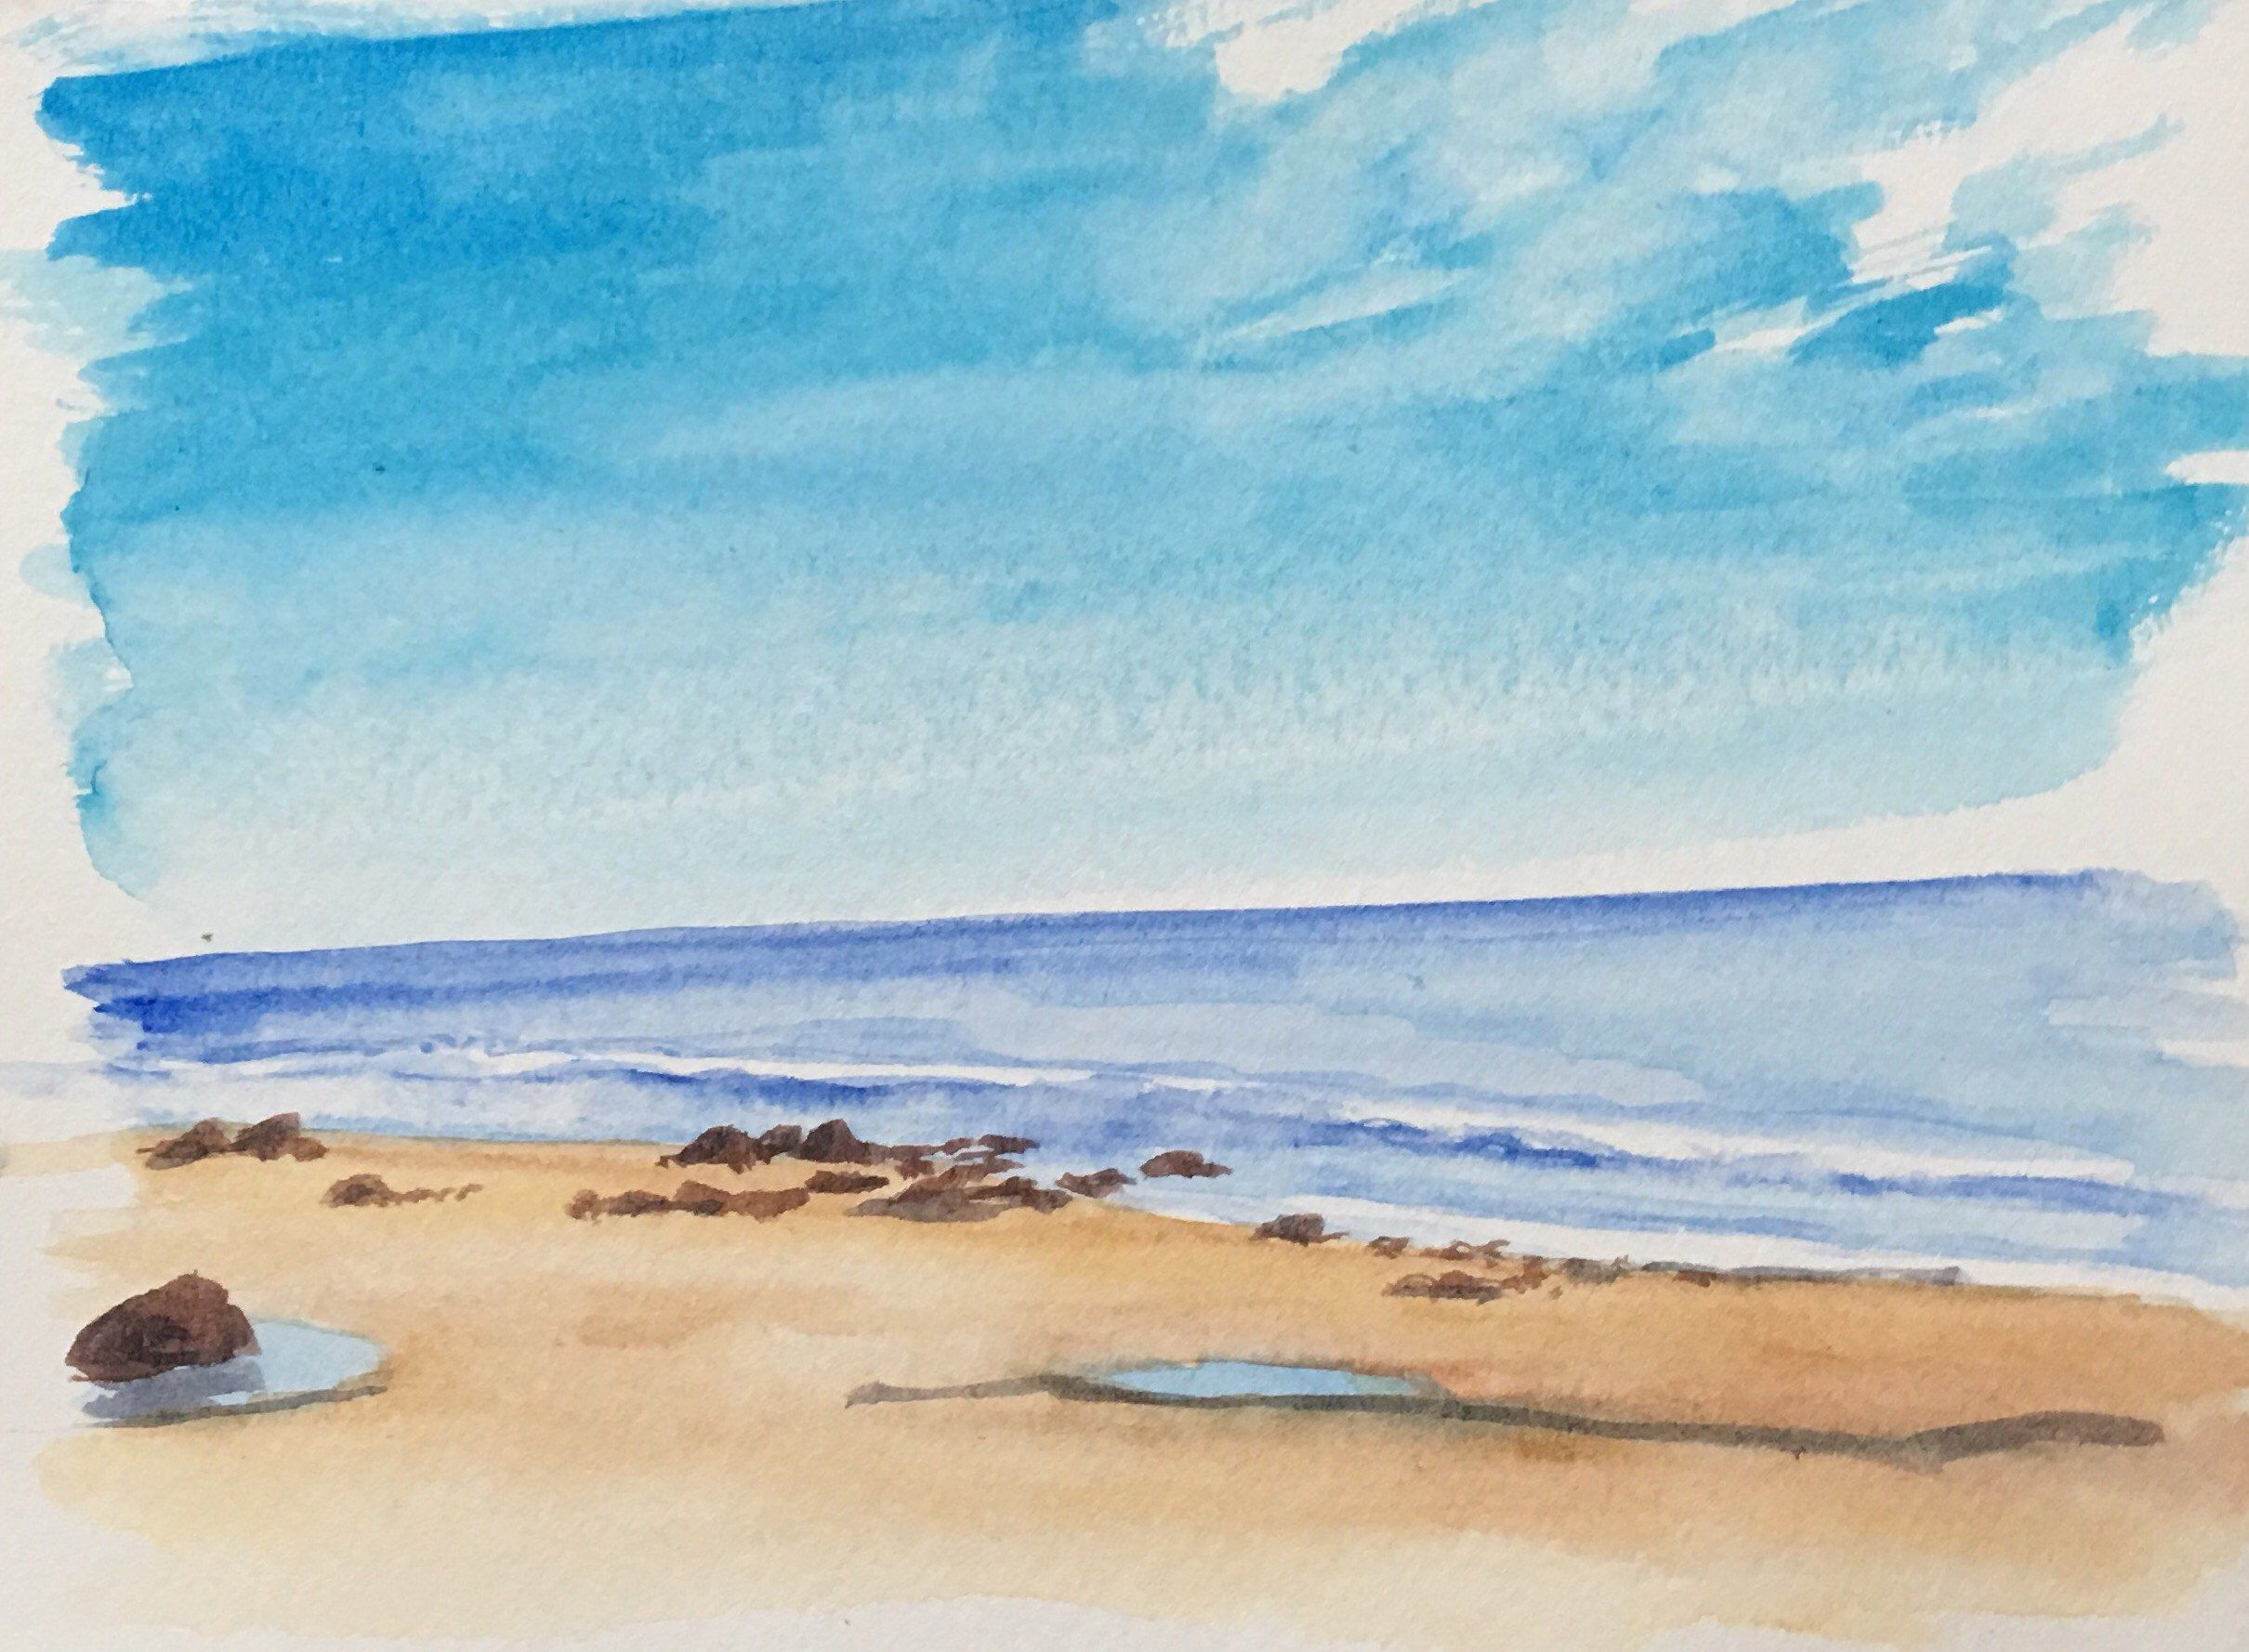 Watercolor On Paper The Early Spring In Maine Makes For Peaceful